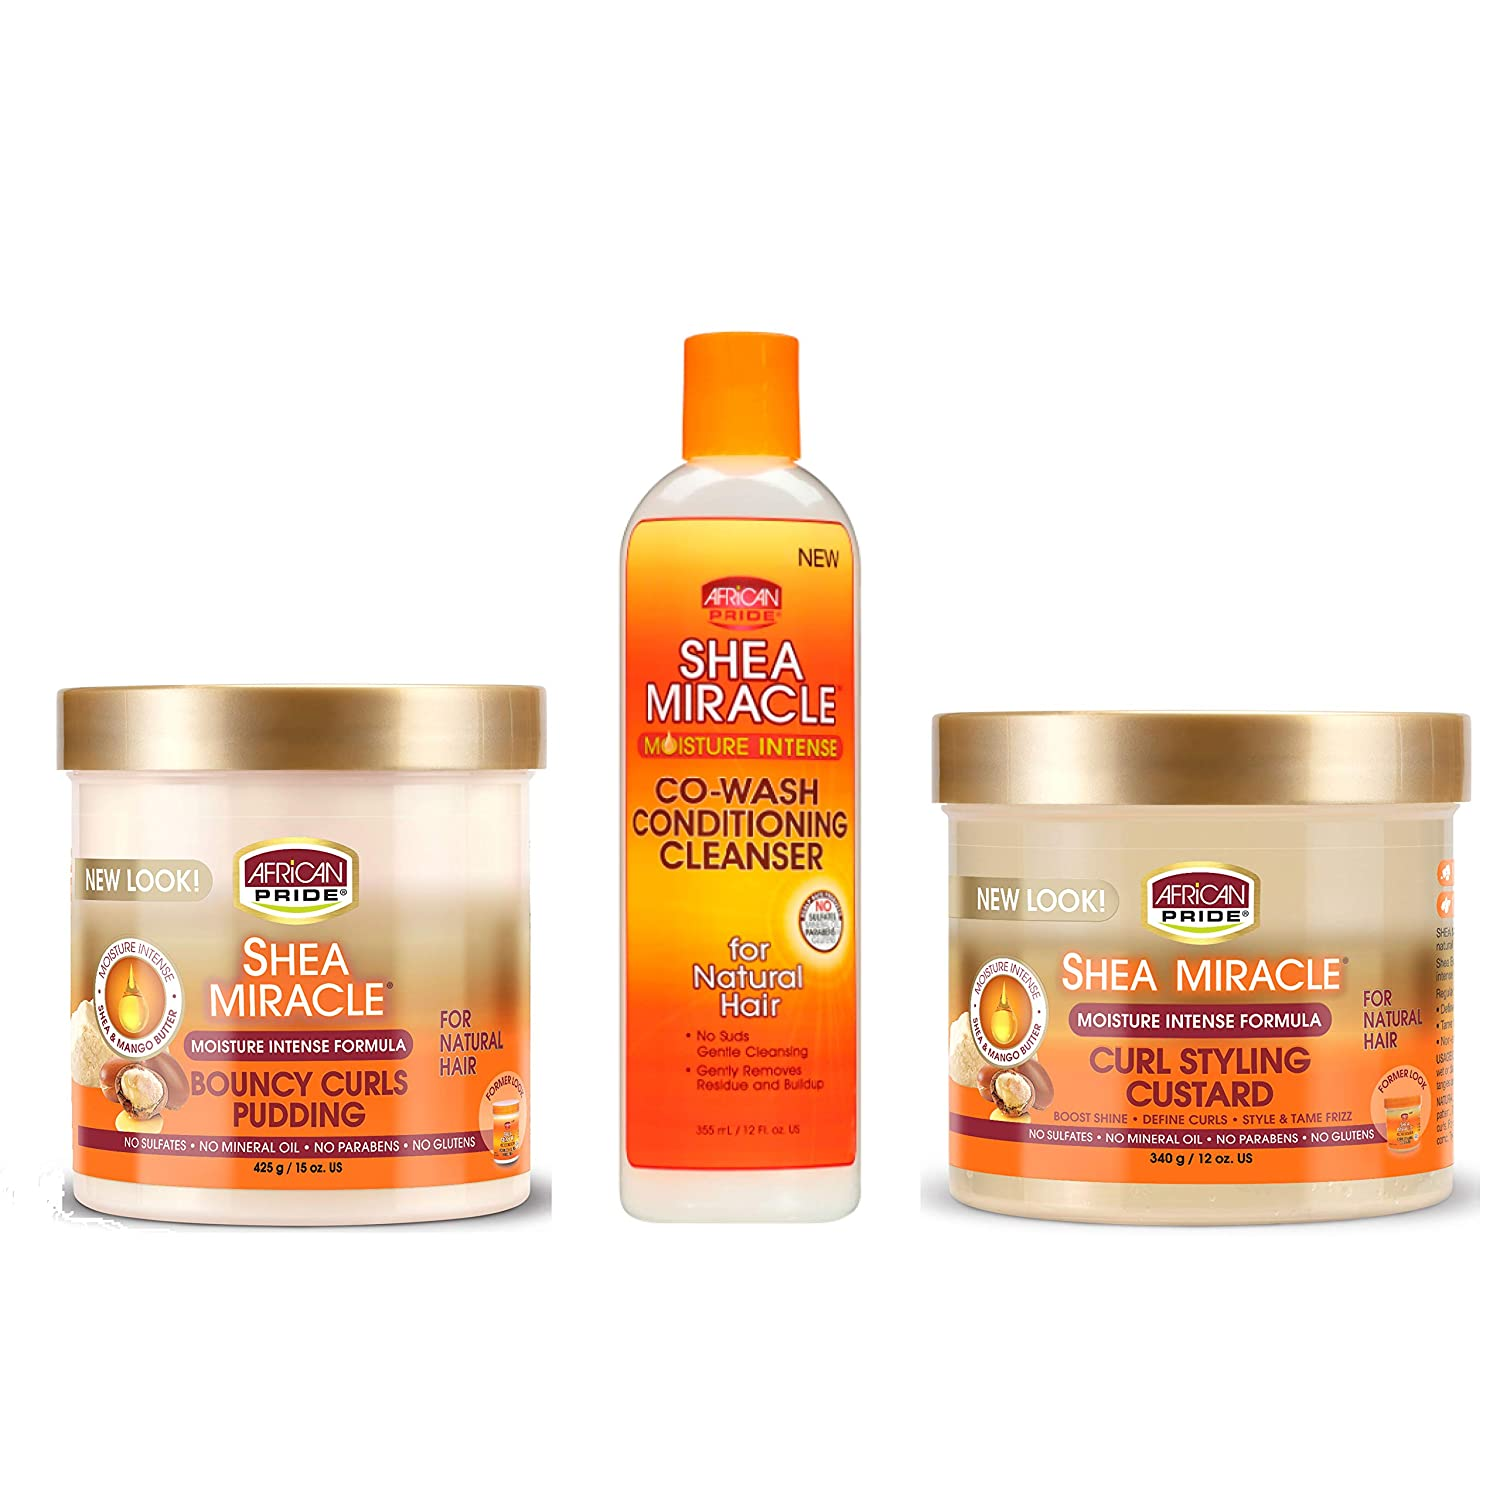 African Pride Shea Miracle: Co-Wash Conditioning Cleanser, Curl Styling Custard & Bouncy Curls Pudding.